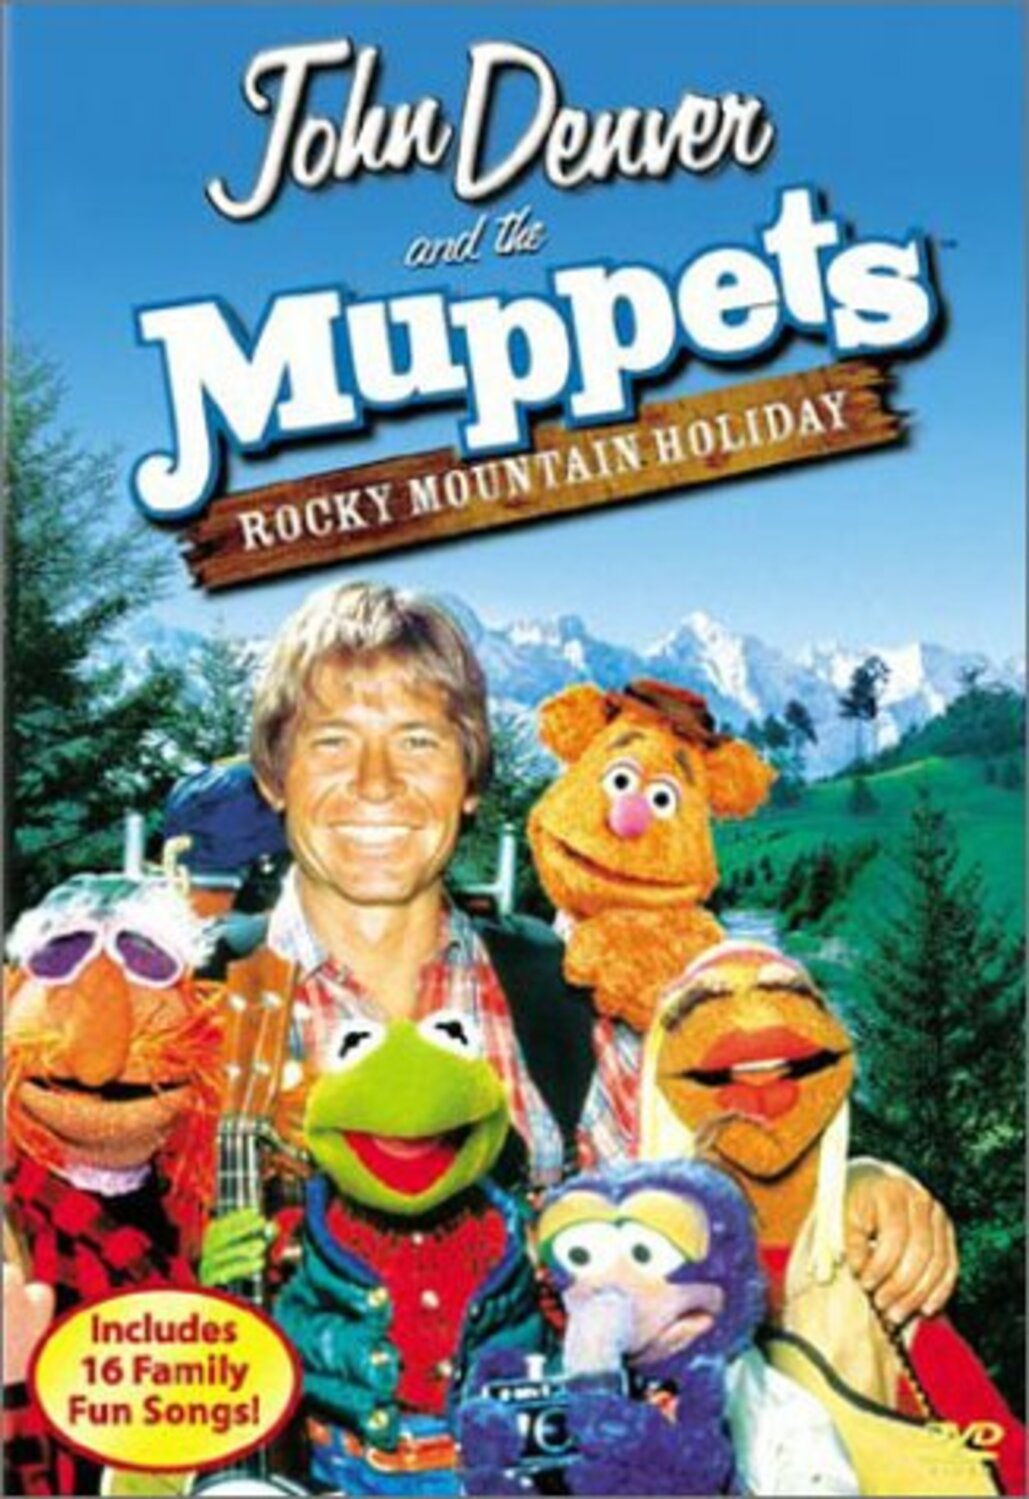 affiche poster rocky mountain holiday john denver muppets disney